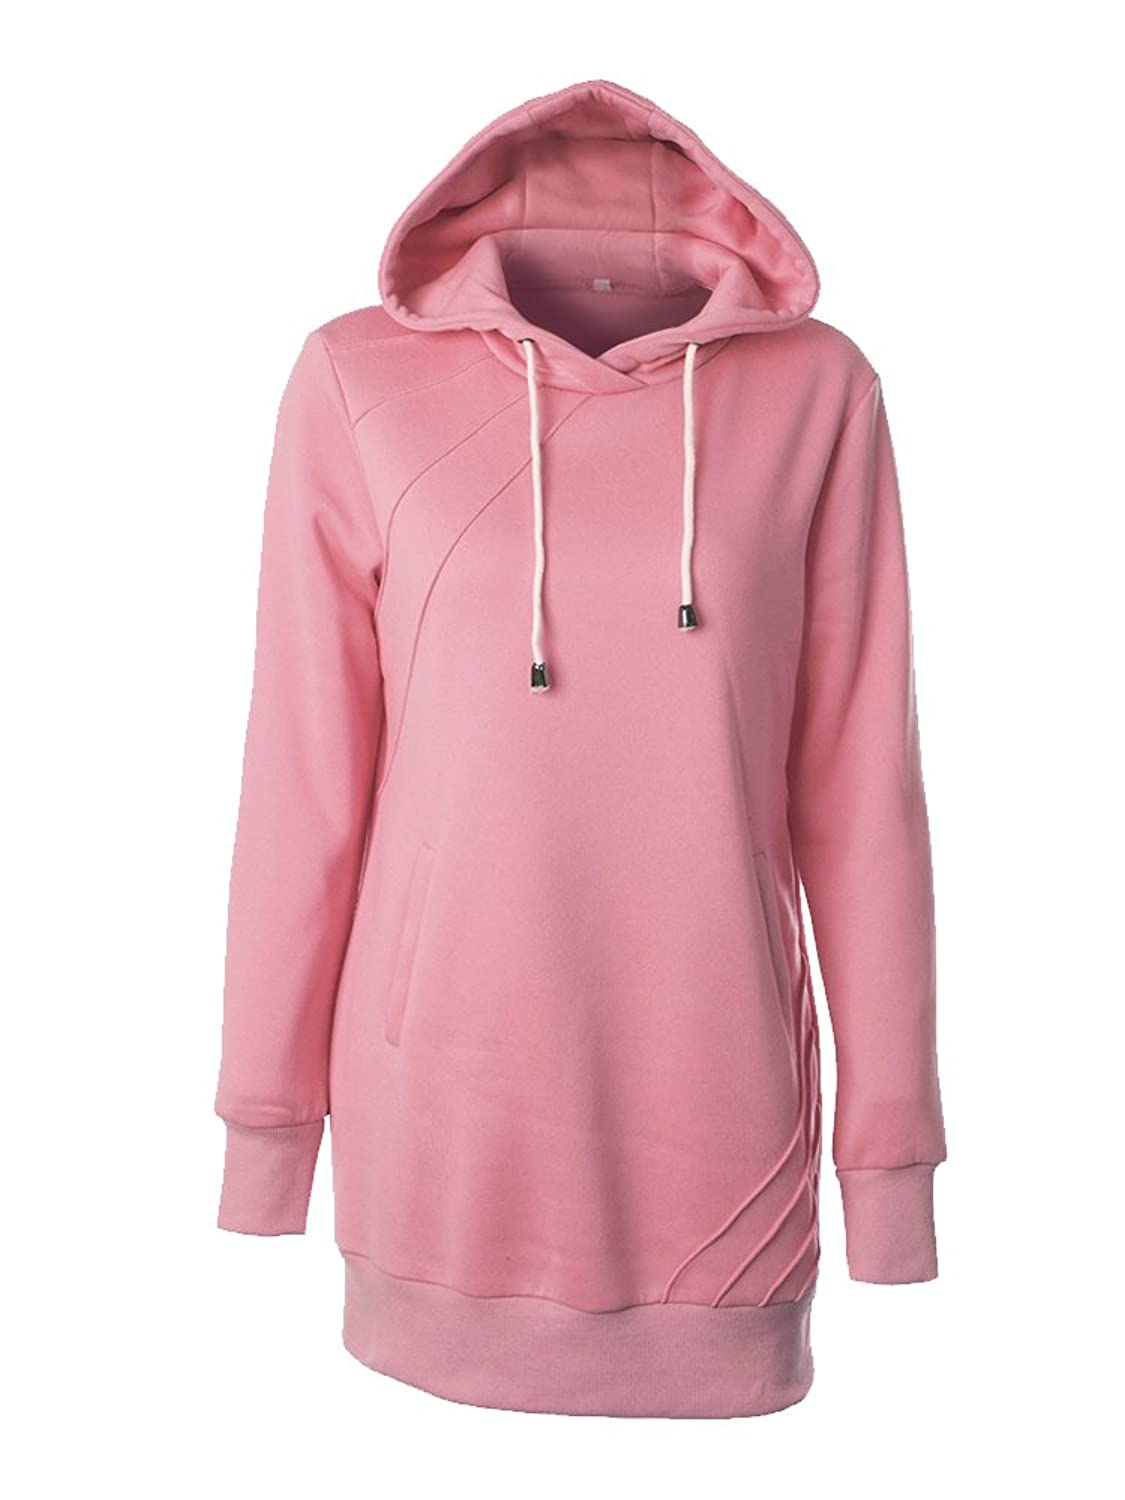 Women's Mid-Long Slim Fit Pullover Tunic Sweater Hoodie